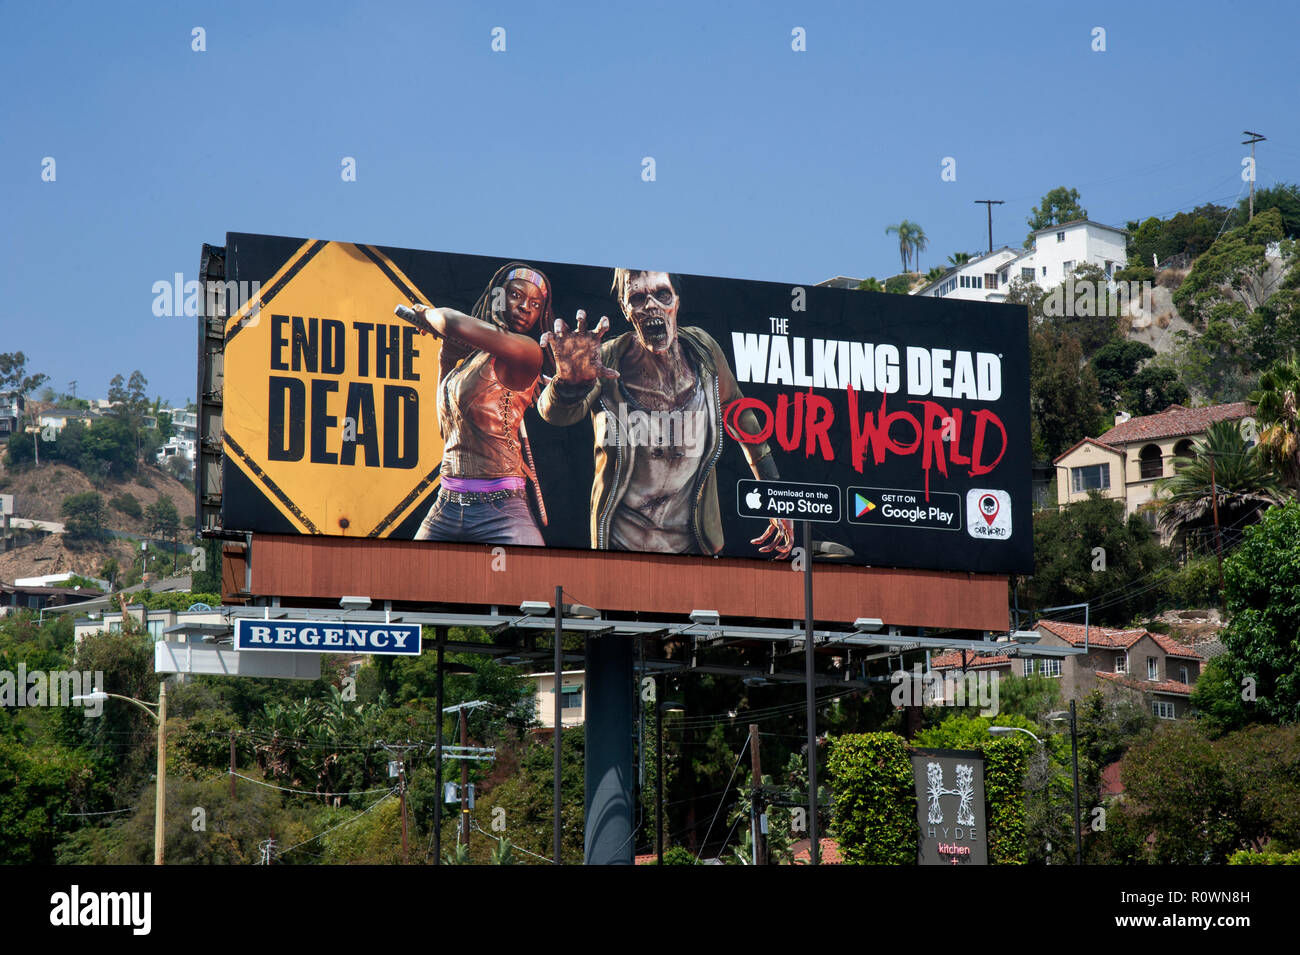 Walking Dead billboard Sunset Strip 2018 - Stock Image